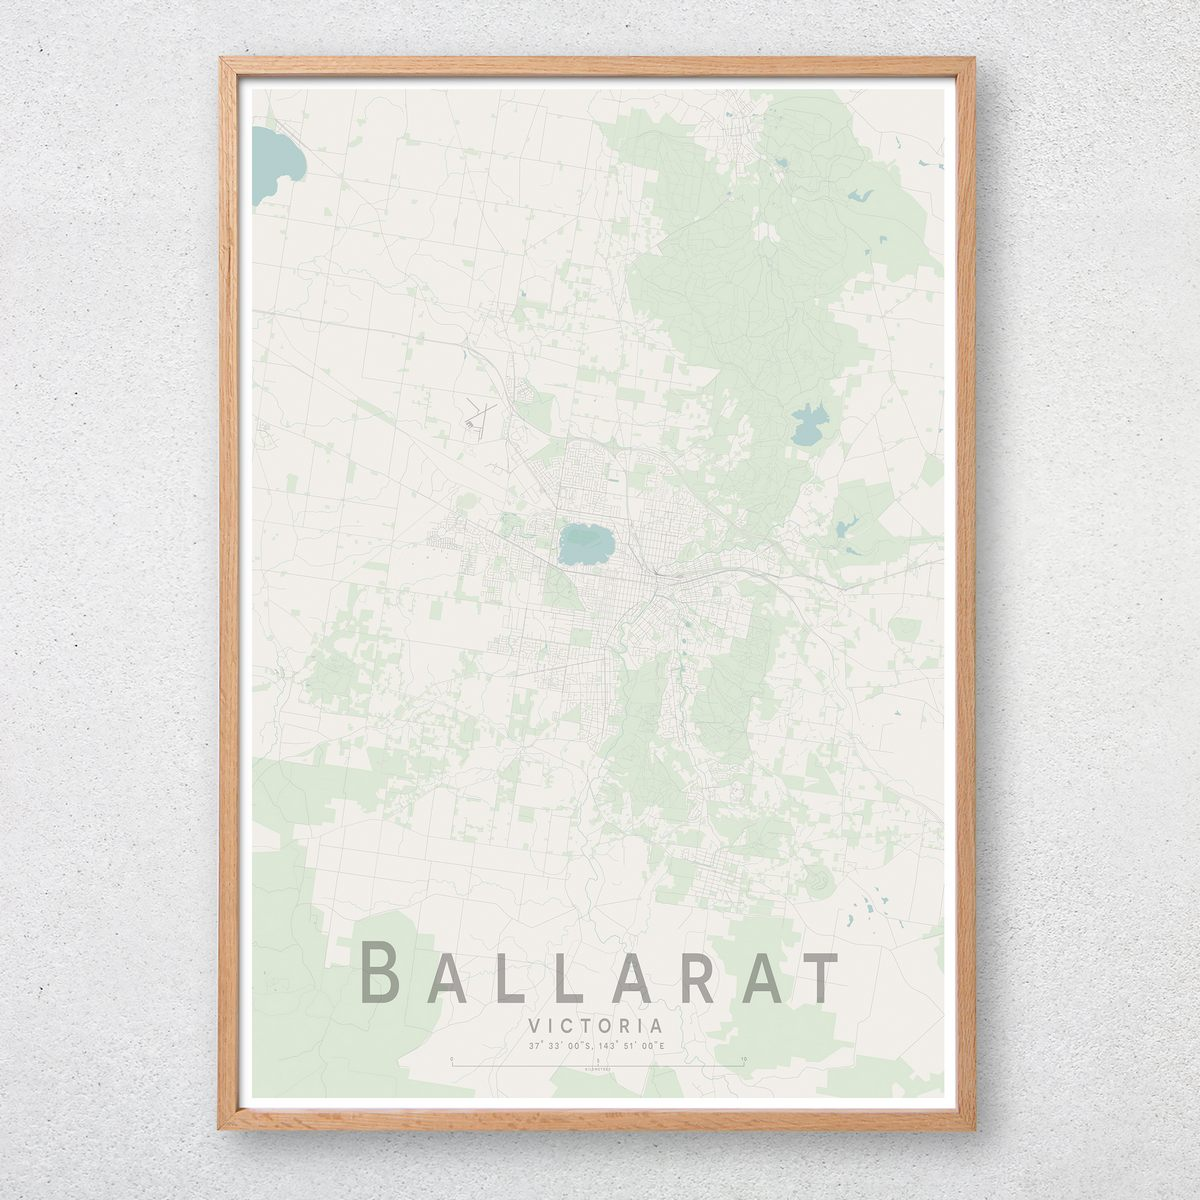 Map Of Australia Ballarat.Details About Ballarat Map Print Australia Wall Art Poster City Map Wall Decor A3 A2 A1